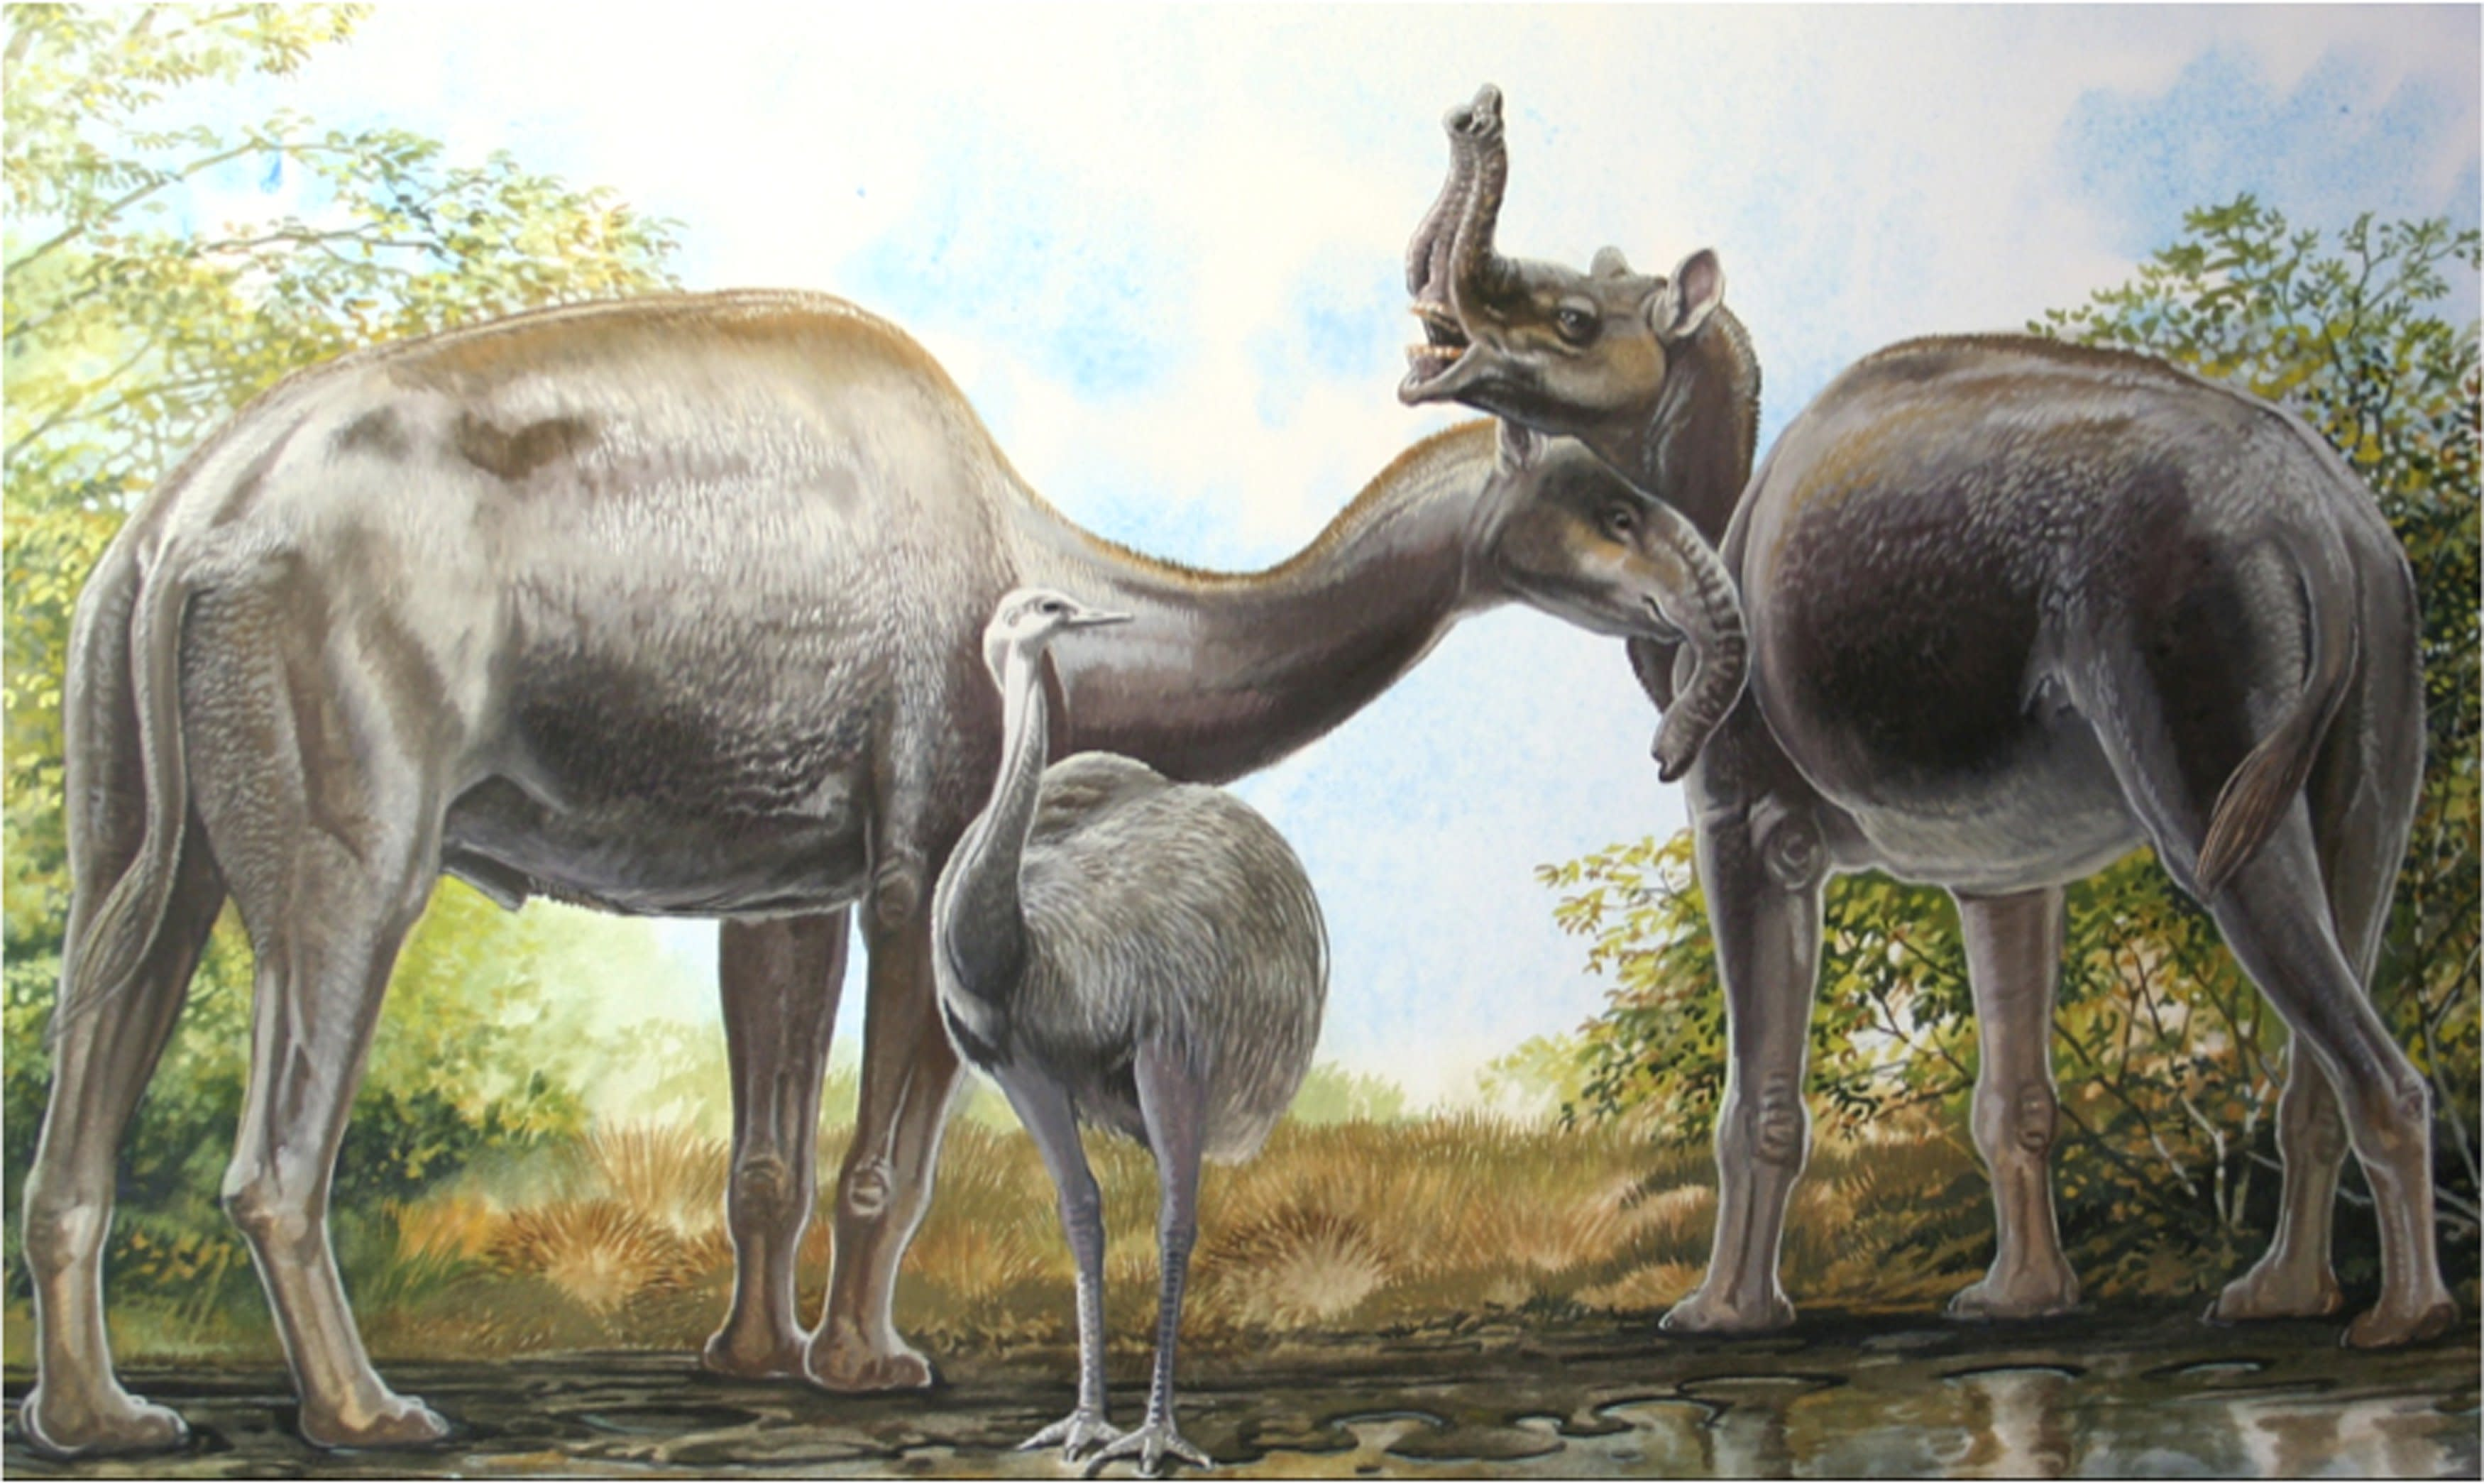 An artist's rendering shows the South American native ungulate Macrauchenia patachonica which had a number of remarkable adaptations, including the positioning of its nostrils high on its head in this illustration released on March 17, 2015. This implies that Macrauchenia may have had a mobile proboscis, as pictured here. REUTERS/Peter Schouten/Handout (UNITED STATES - Tags: ANIMALS ENVIRONMENT) FOR EDITORIAL USE ONLY. NOT FOR SALE FOR MARKETING OR ADVERTISING CAMPAIGNS. THIS IMAGE HAS BEEN SUPPLIED BY A THIRD PARTY. IT IS DISTRIBUTED, EXACTLY AS RECEIVED BY REUTERS, AS A SERVICE TO CLIENTS